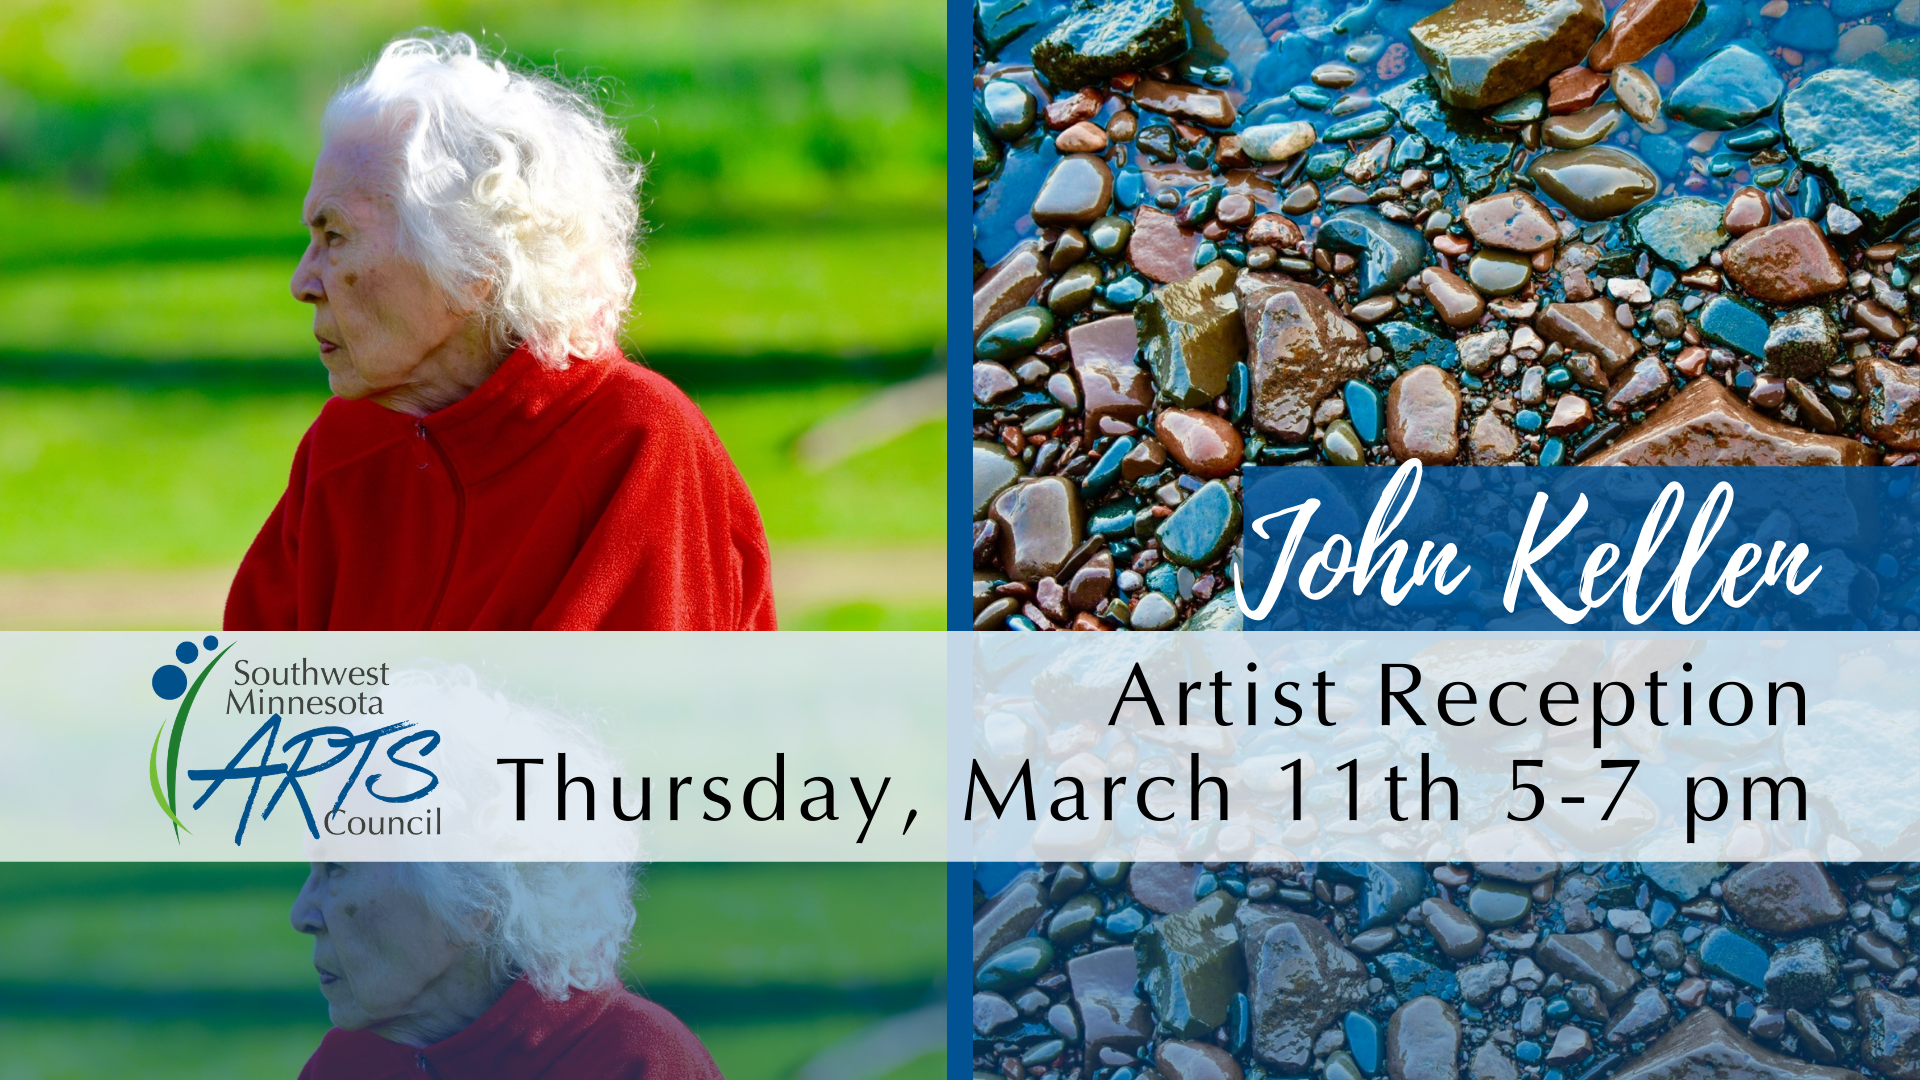 [Event Image: Background is two photographs taken by John Kellen. The one on the left side is of his mother, a profile of an elderly woman with short white hair and a red shirt, behind her is out of focus green landscape. The right picture is colorful rocks with receding blue tinged water. There is the SMAC logo in the bottom left corner. Text reads: